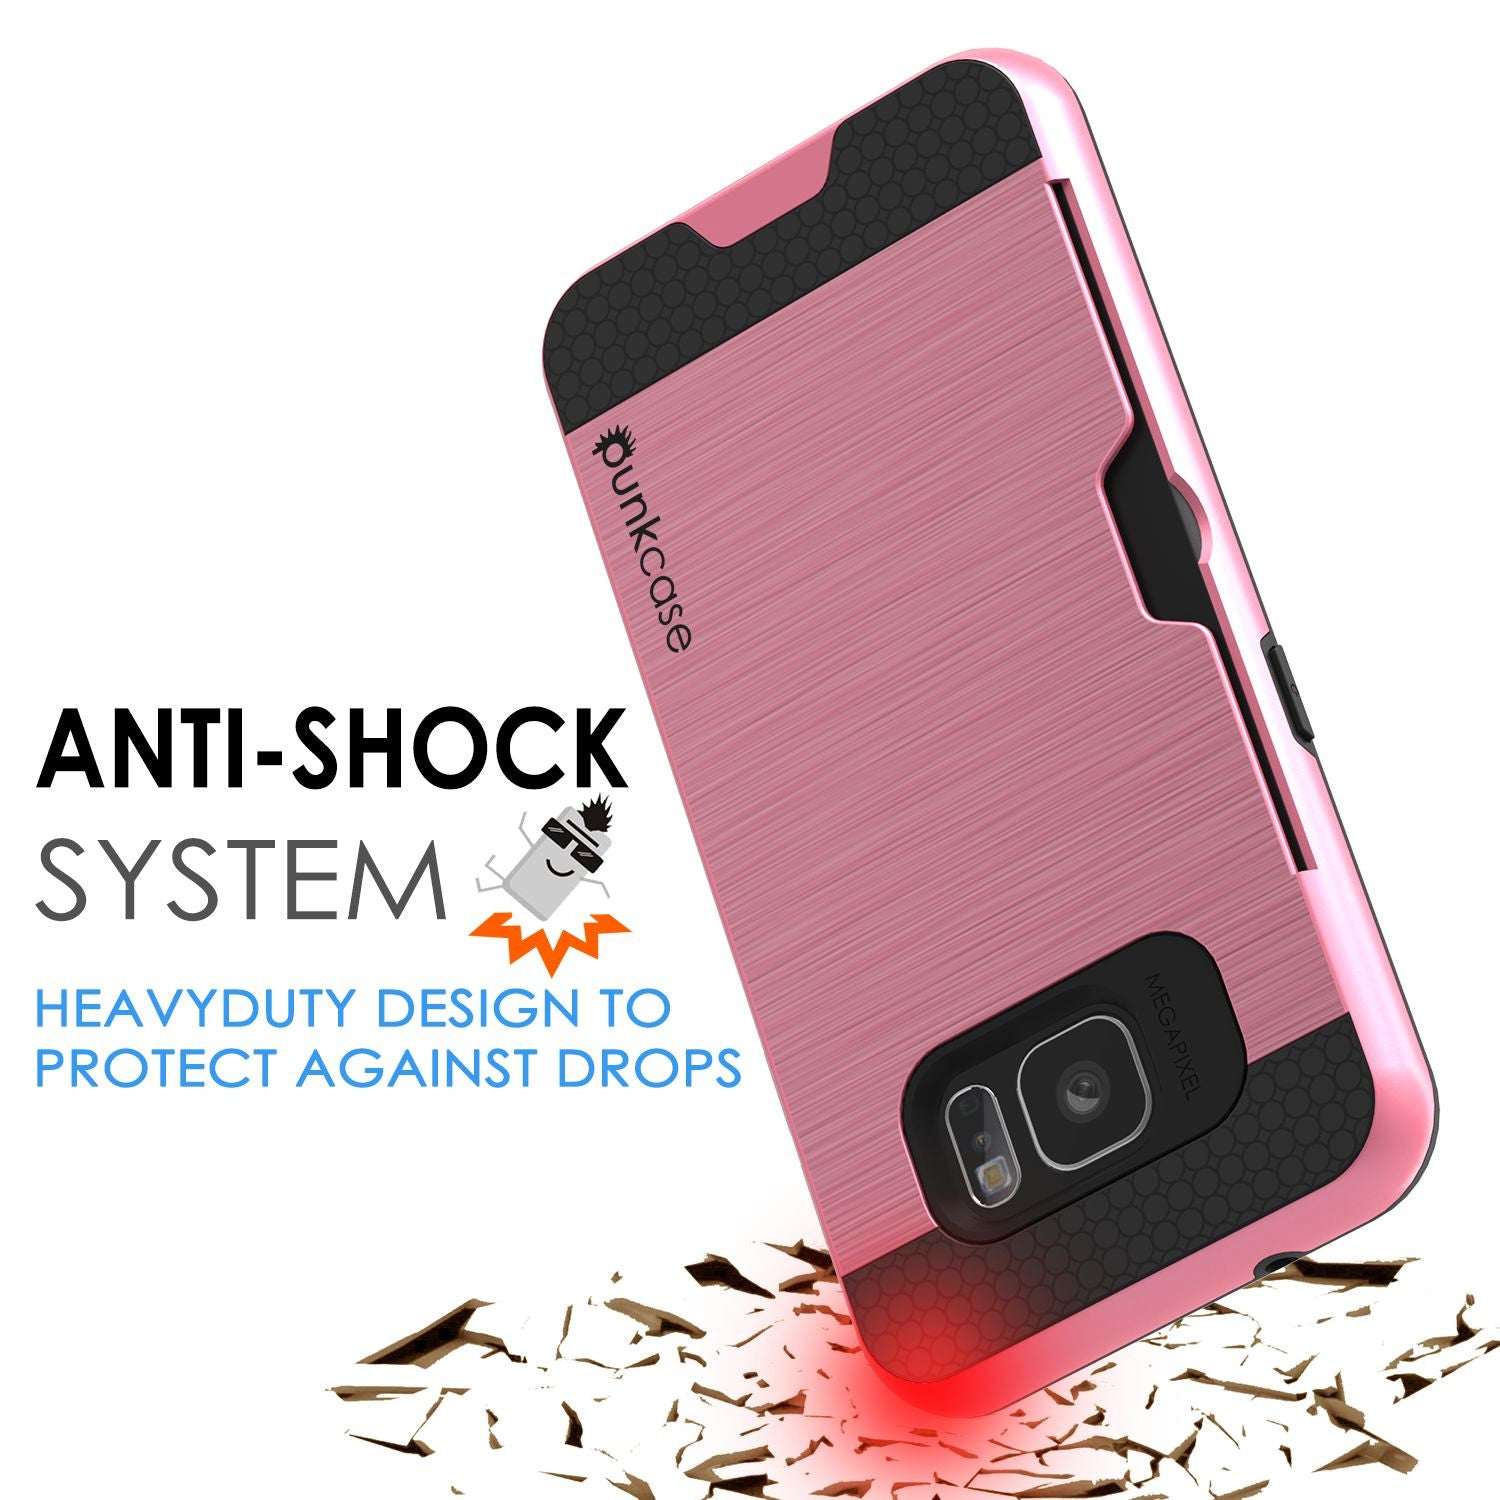 Galaxy s7 Case PunkCase SLOT Pink Series Slim Armor Soft Cover Case w/ Tempered Glass